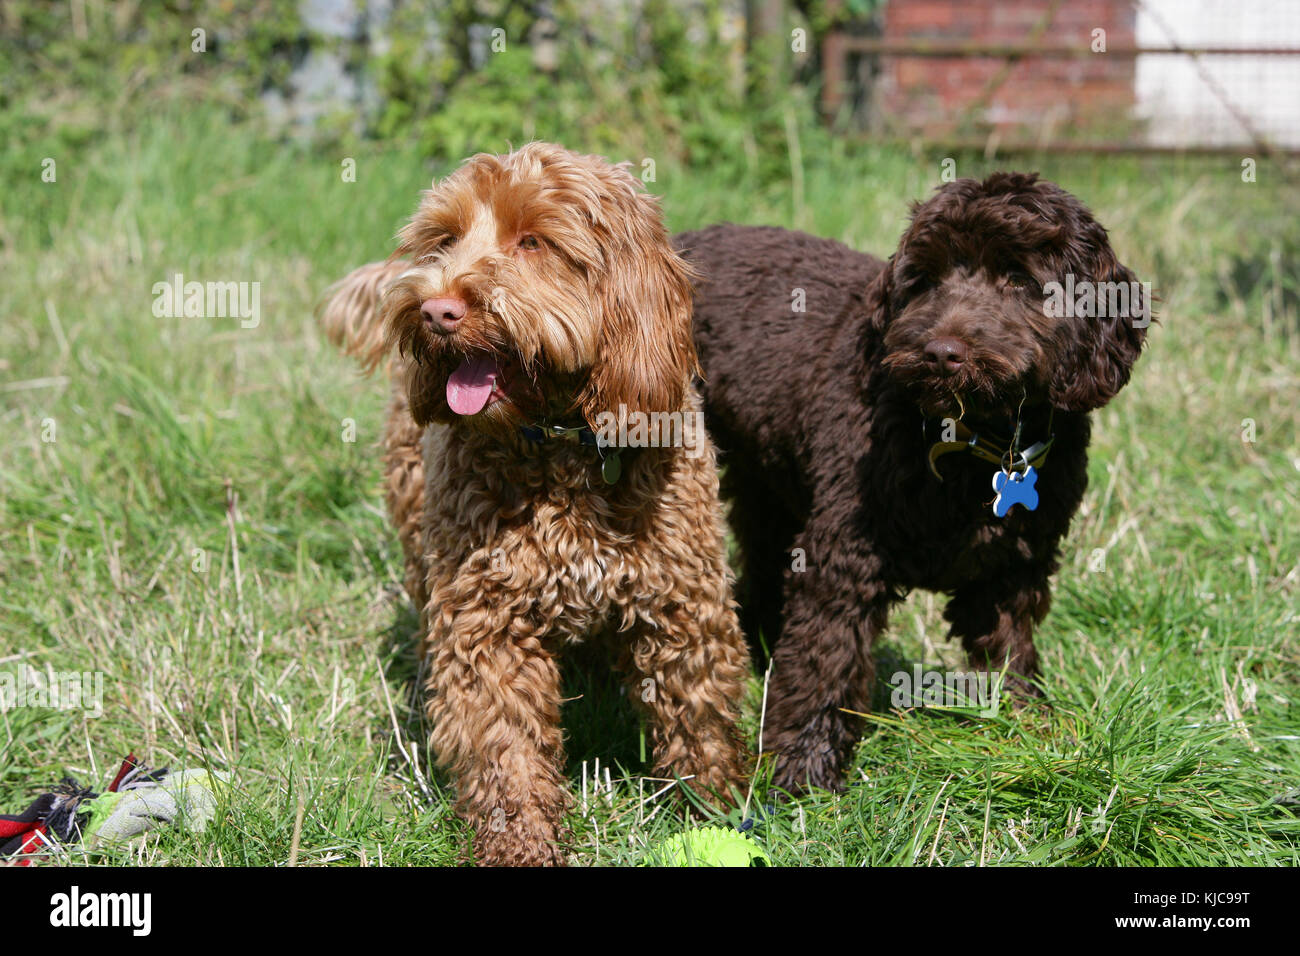 Cockerpoo Cockapoo Cocker Poodle Stock Photo